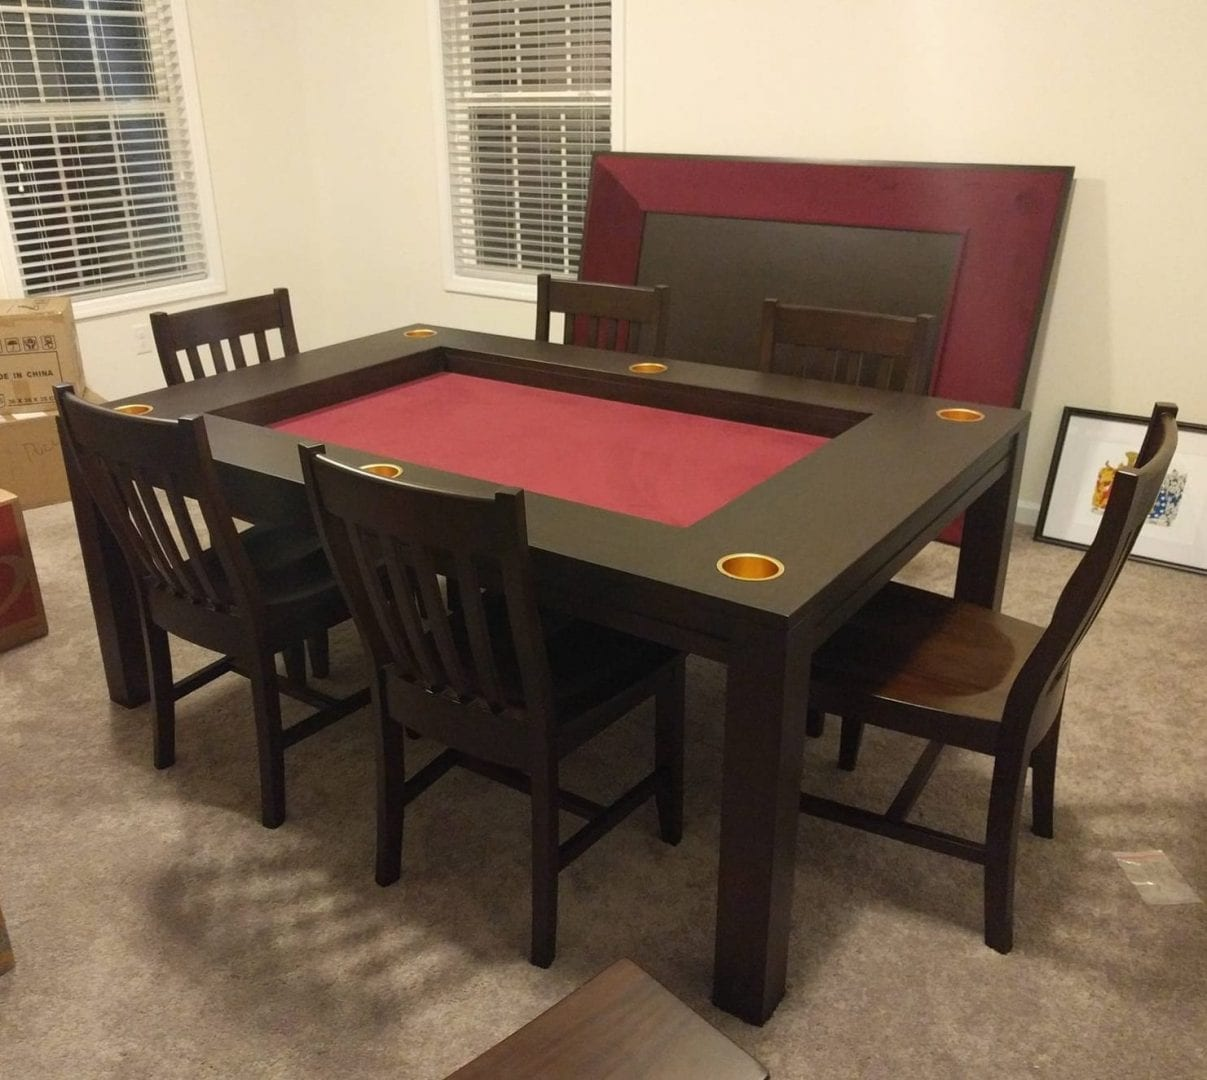 Dining game table one table for everyday dining and game for Dining room game table